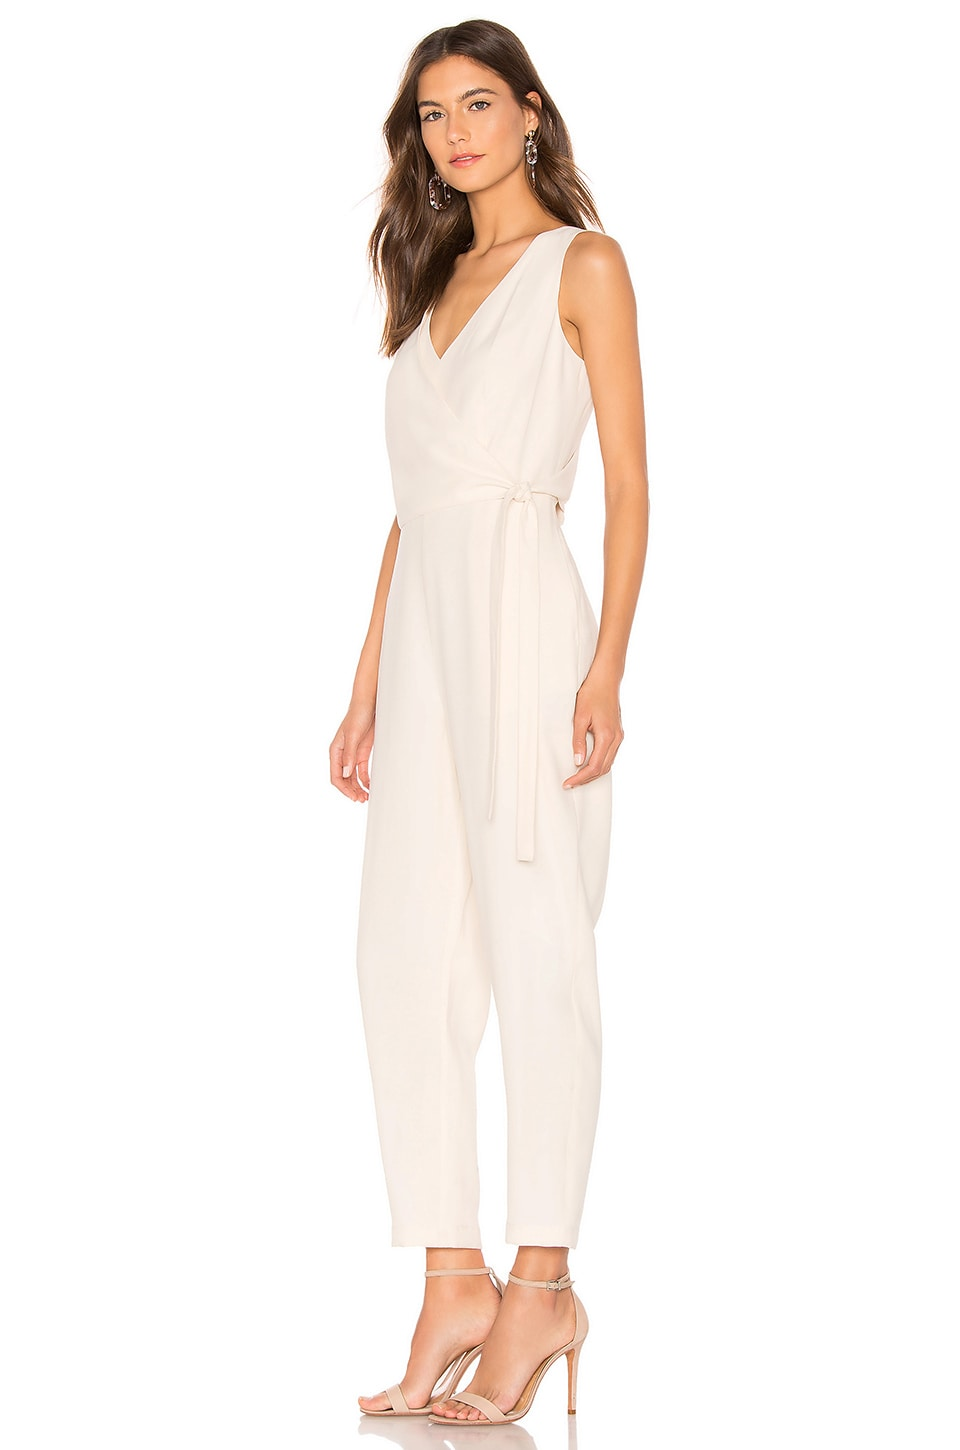 Wrap Front Jumpsuit, view 2, click to view large image.